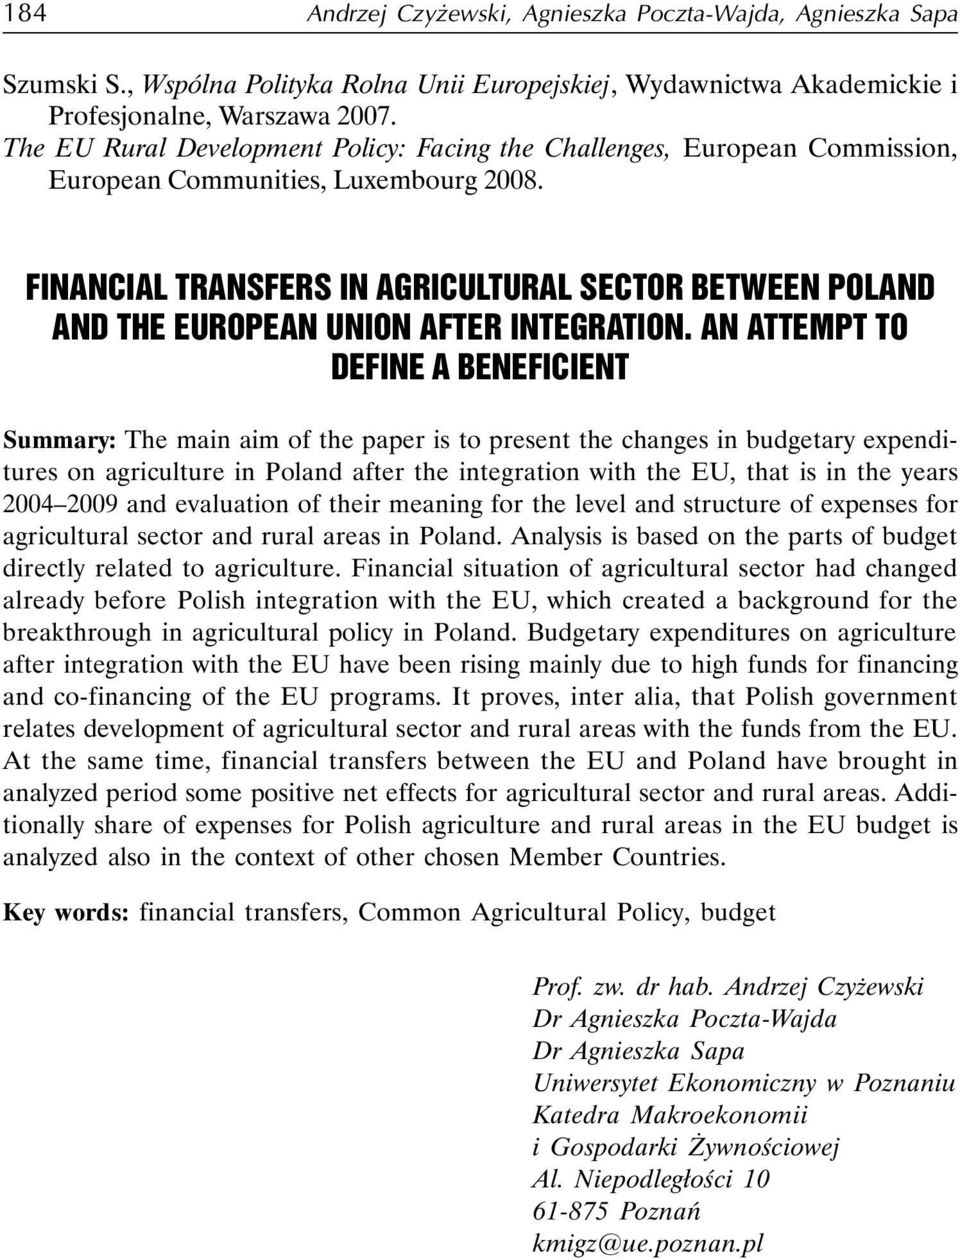 FINANCIAL TRANSFERS IN AGRICULTURAL SECTOR BETWEEN POLAND AND THE EUROPEAN UNION AFTER INTEGRATION.